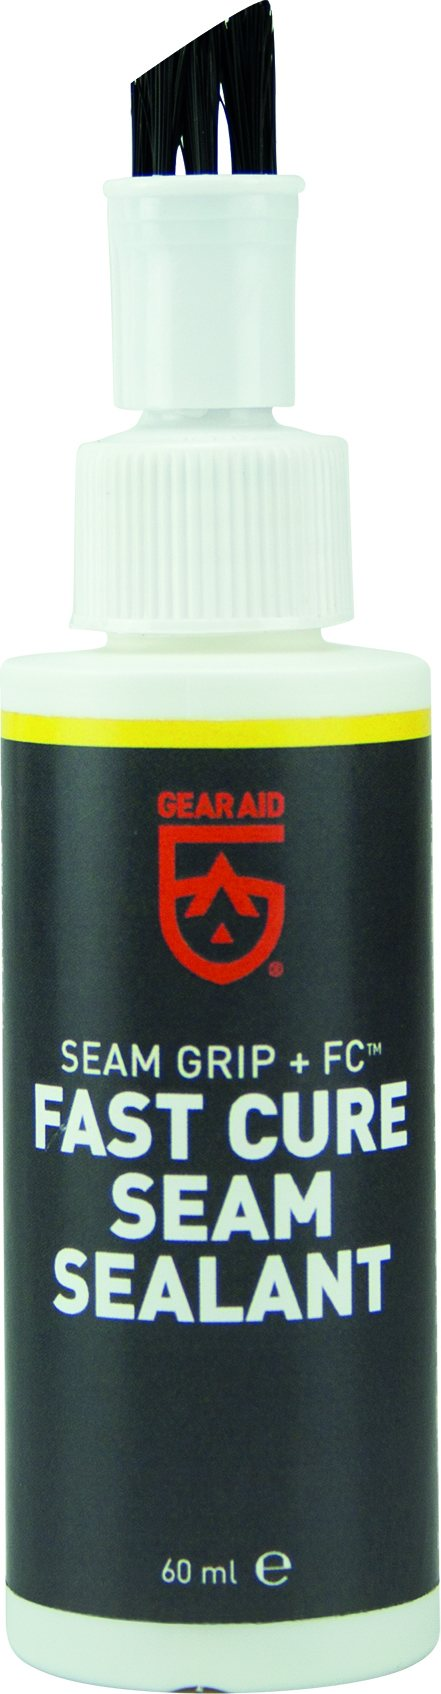 GearAid Seam Grip Fast Cure Seam Sealant (59 ml)